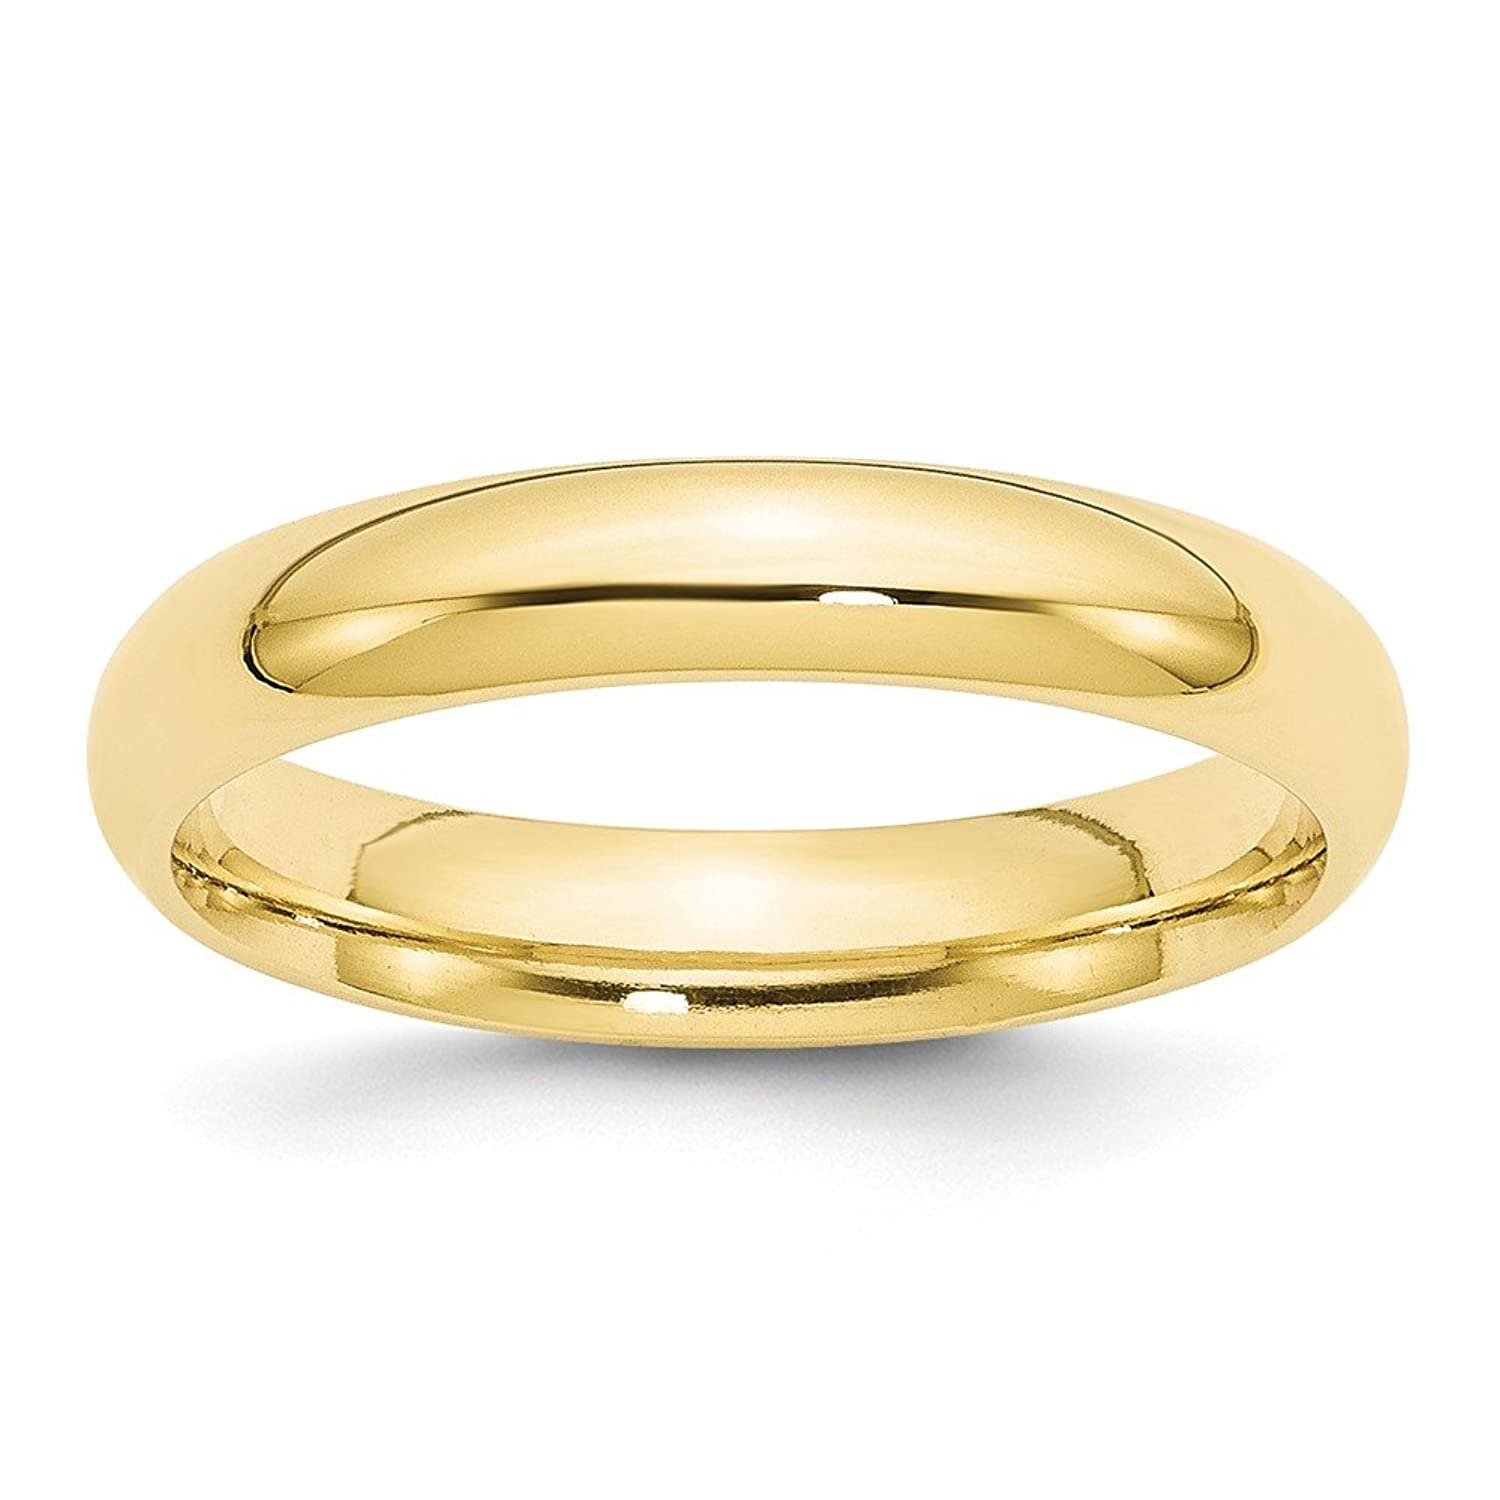 10k Yellow Gold 4mm Standard Comfort Fit Mens Womens Wedding Anniversary Band Size 10.5